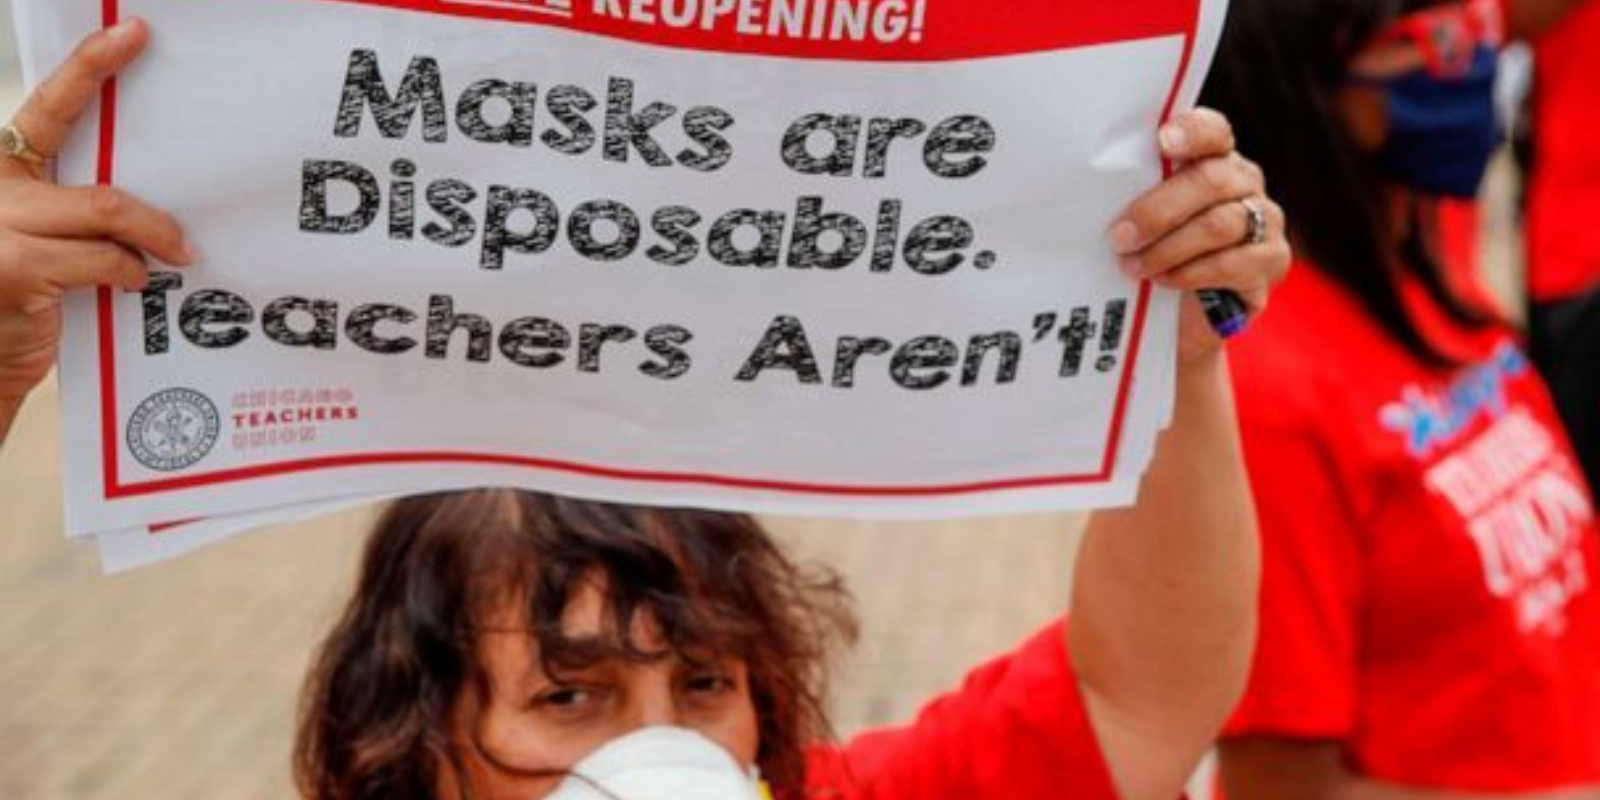 Chicago schools forced to hire babysitters for classrooms after union blocks teachers from teaching